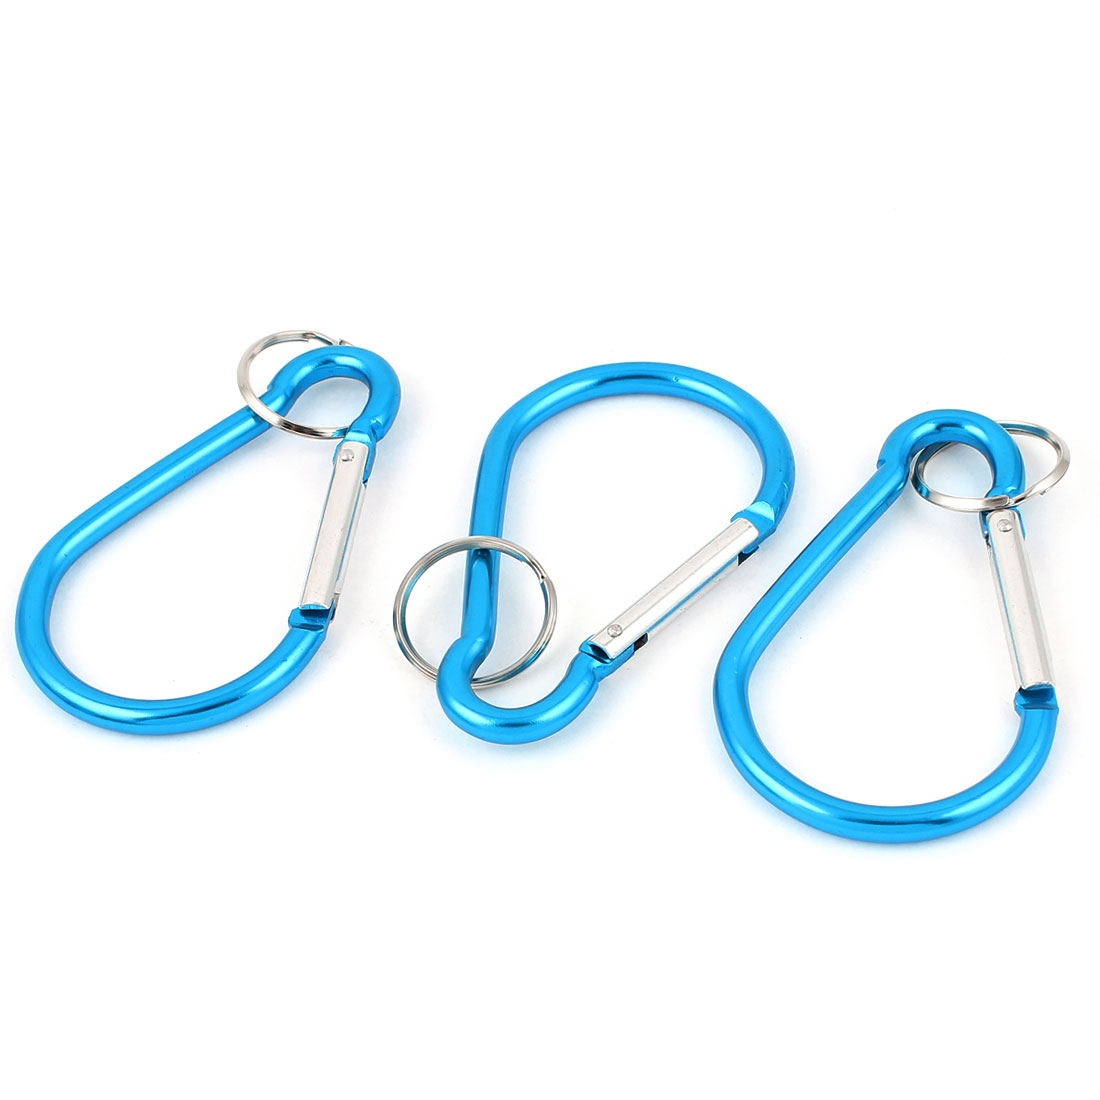 Outdoor Camping Metal Carabiner Spring Loaded Clips Hike Hook Key Chain 3pcs Blue